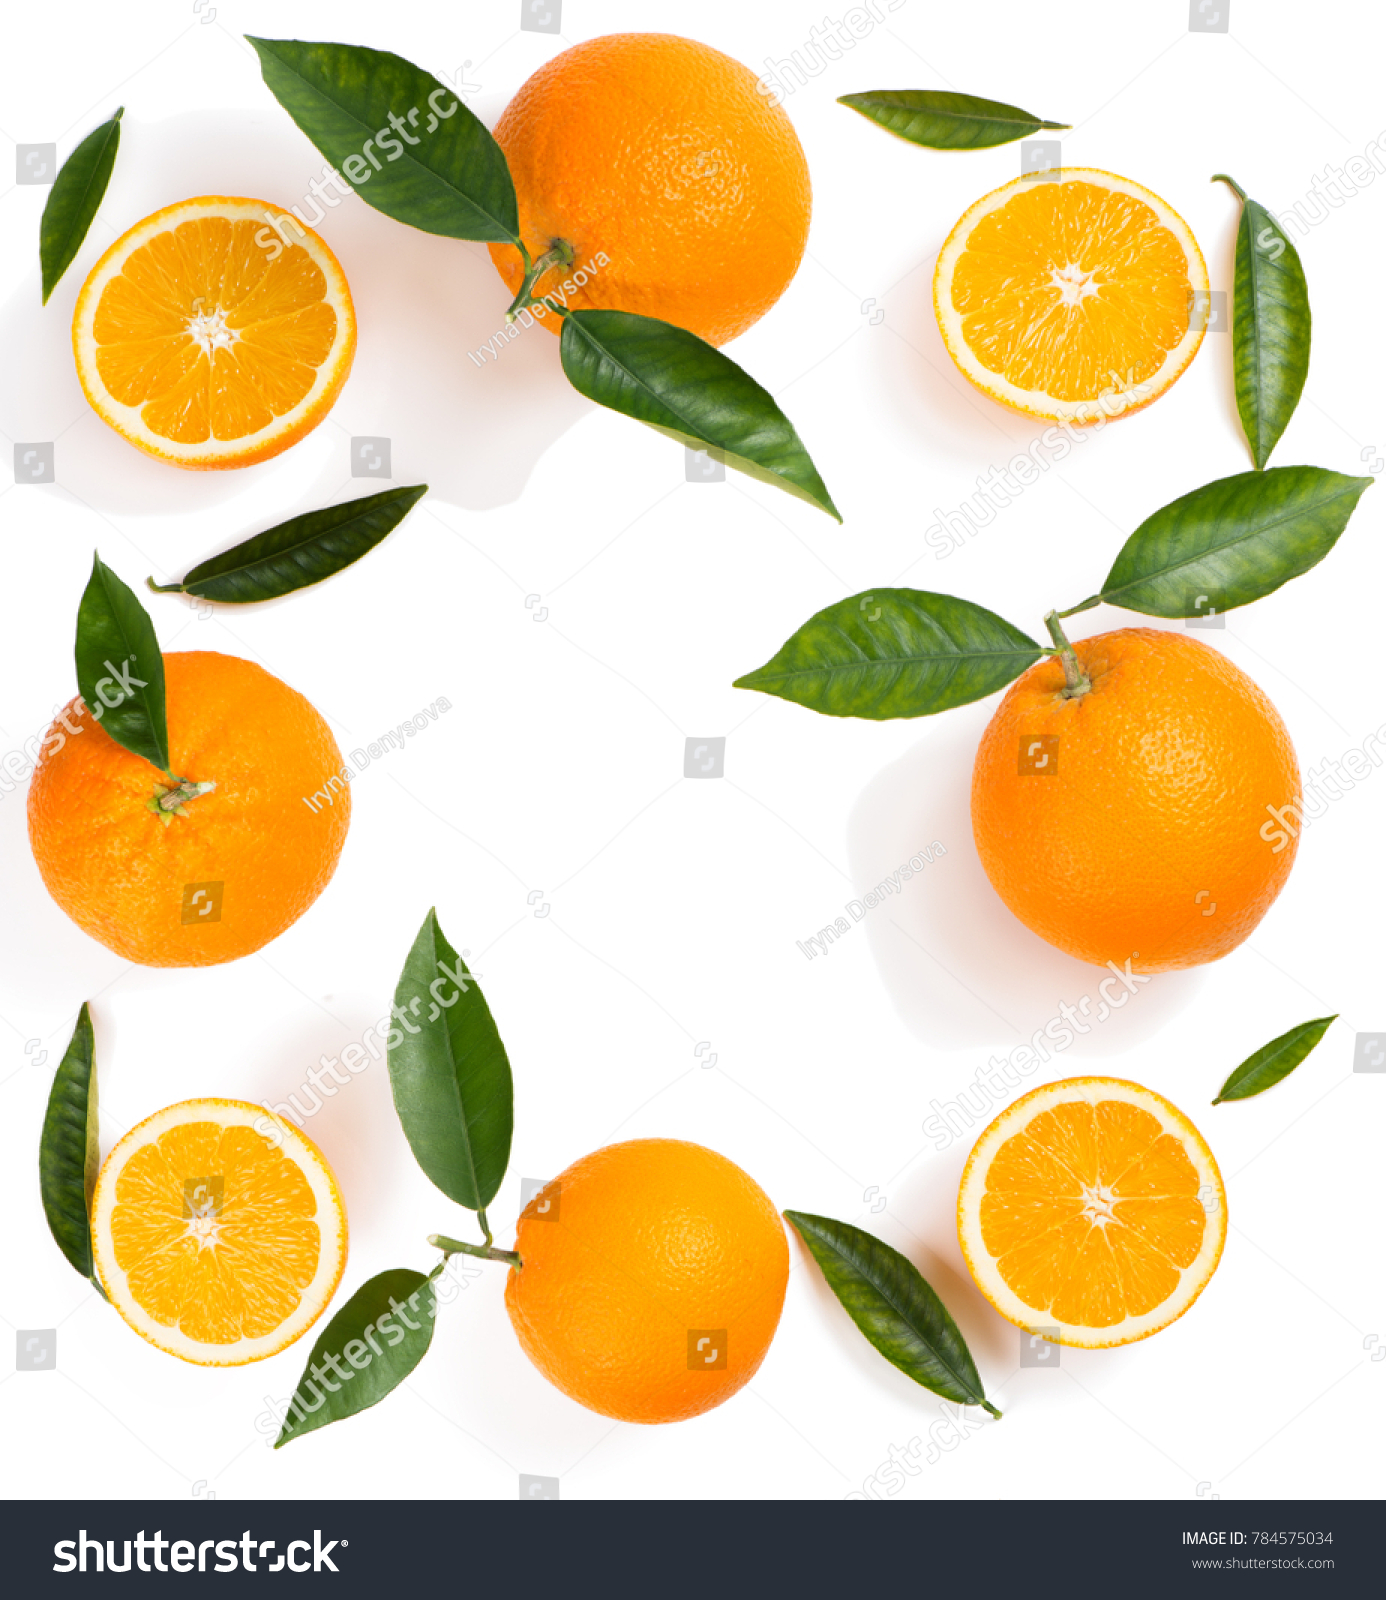 Composition of oranges and green leaves isolated on white background. Top view.